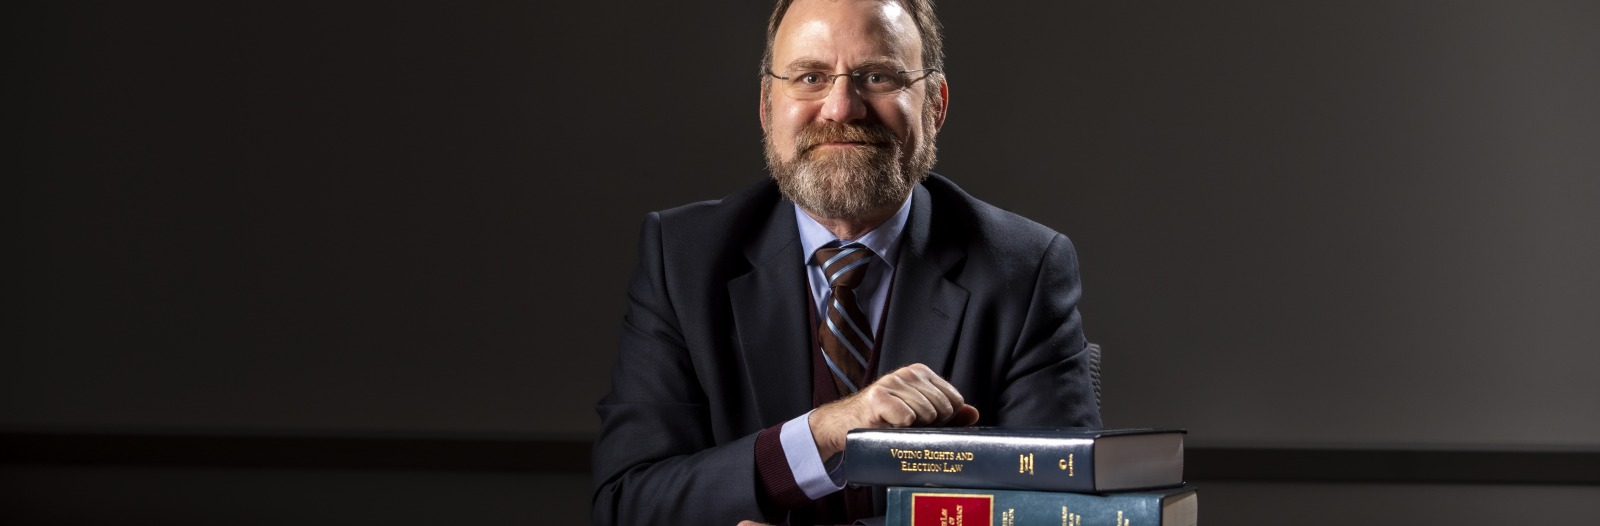 Doug Hess in a classroom at a table with large books